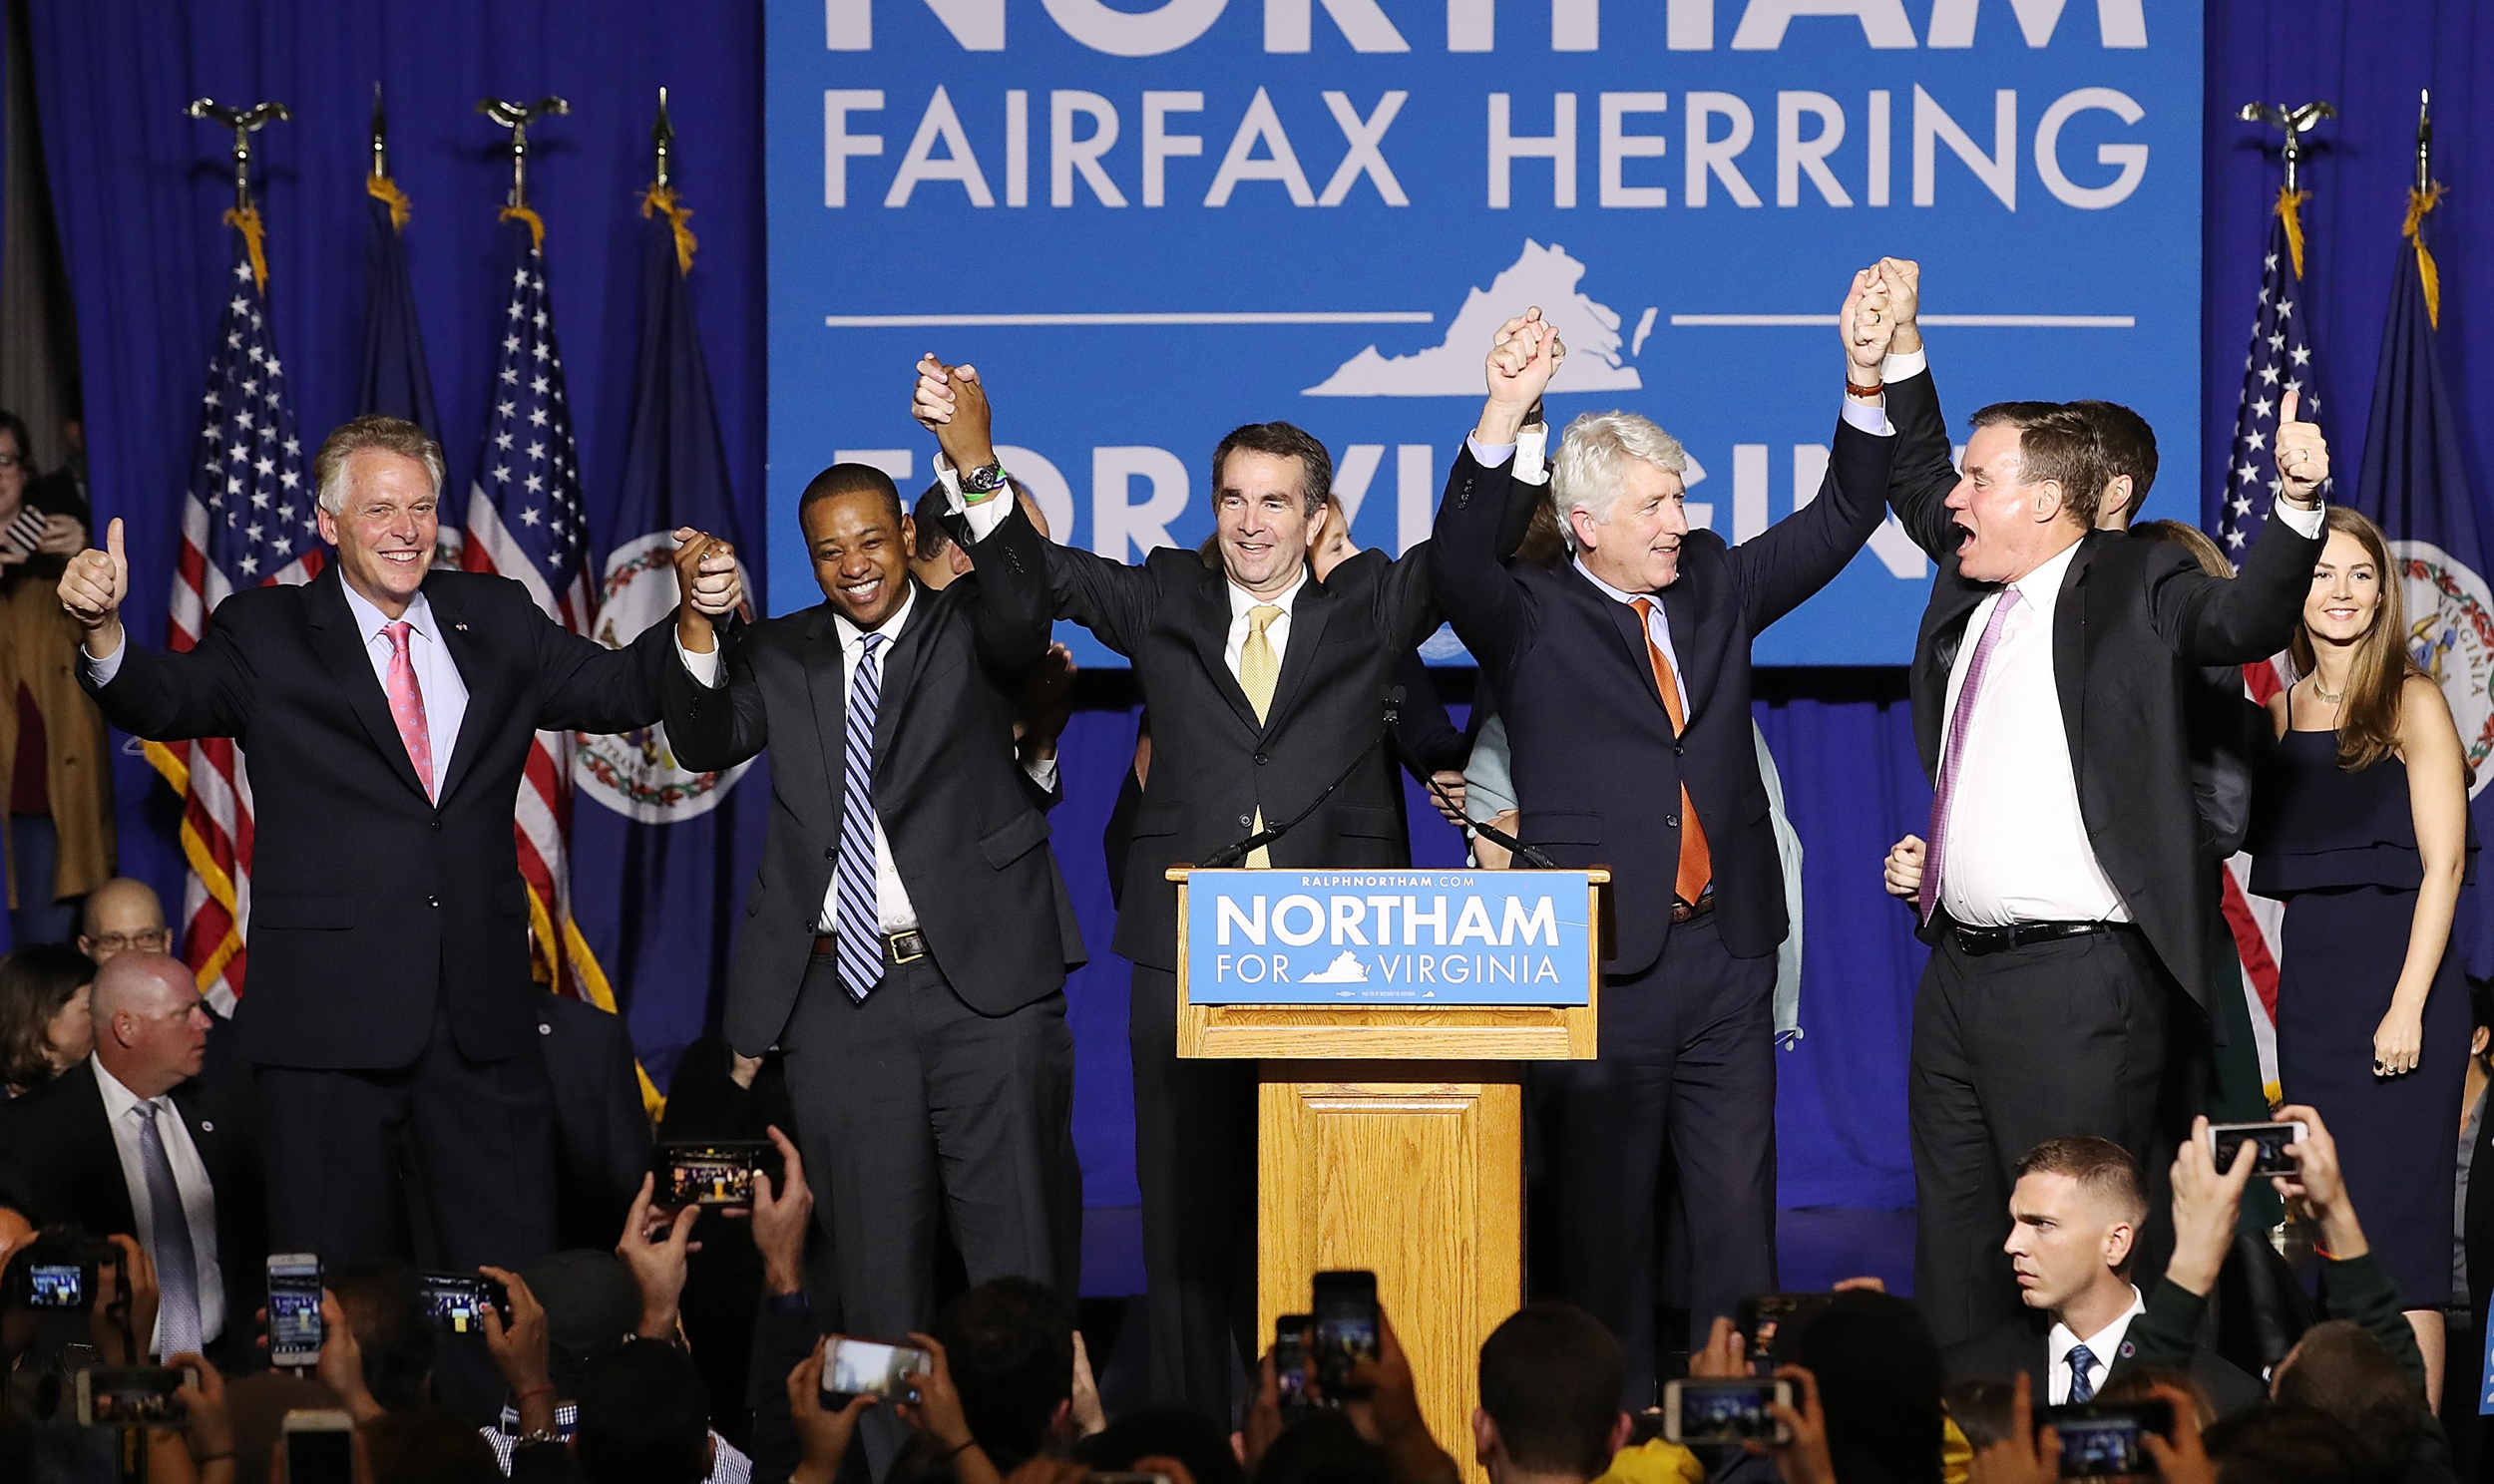 Image: Virginia Gubernatorial Candidate Ralph Northam Holds Election Night Gathering In Fairfax, Virginia